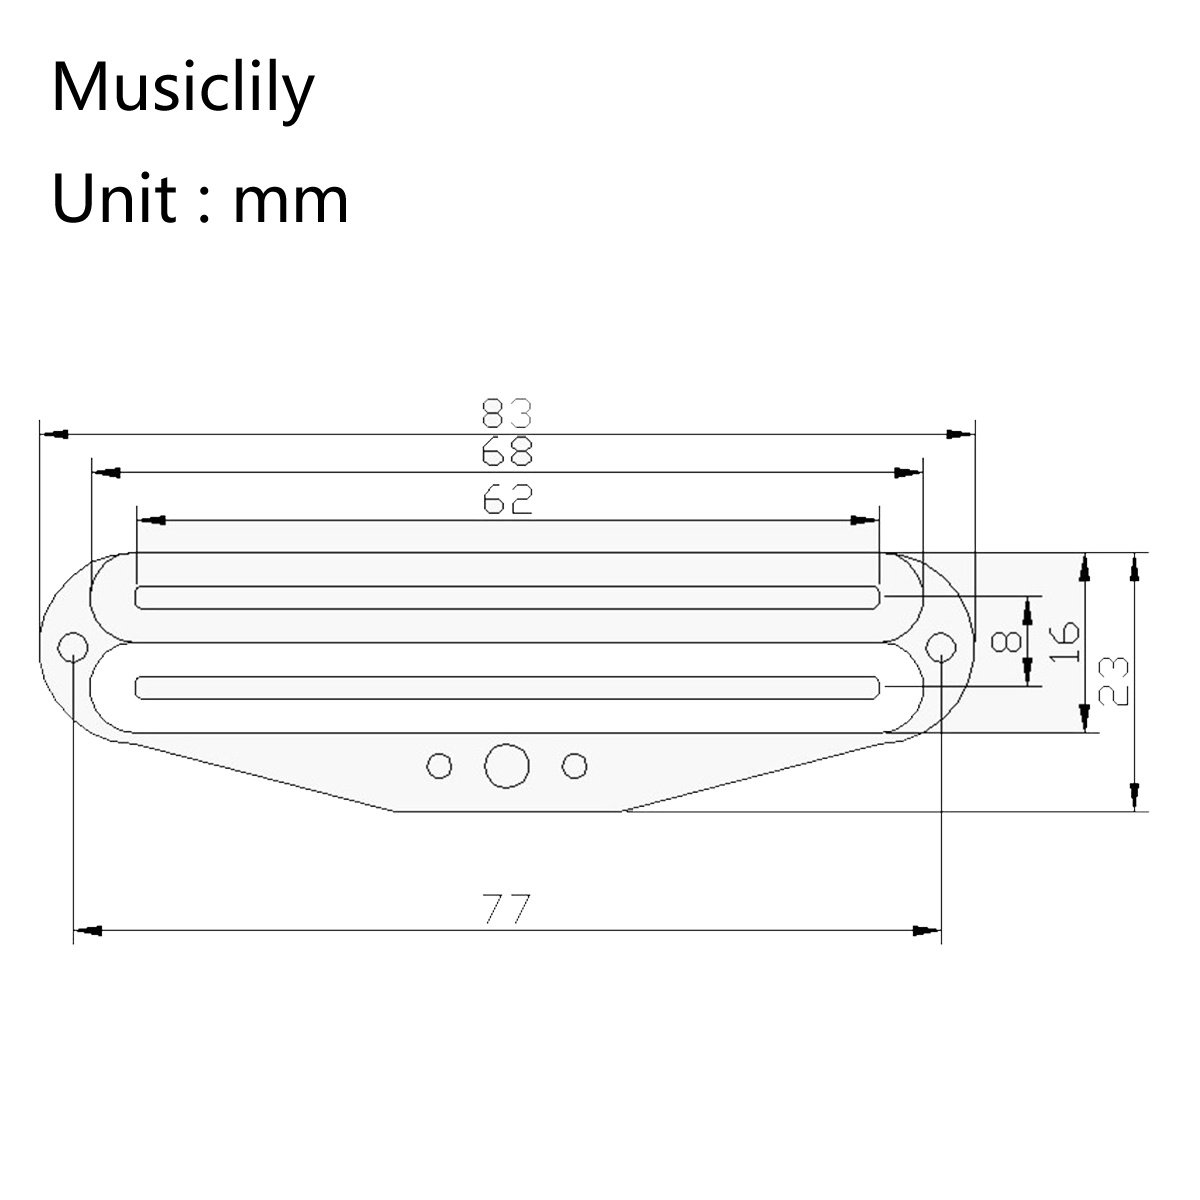 Amazon.com: Musiclily Dual Rail Humbucker Strat Pickup Bridge Neck Pickups  Single Coil Size Hot Blaster for Fender Stratocaster Squier: Musical  Instruments